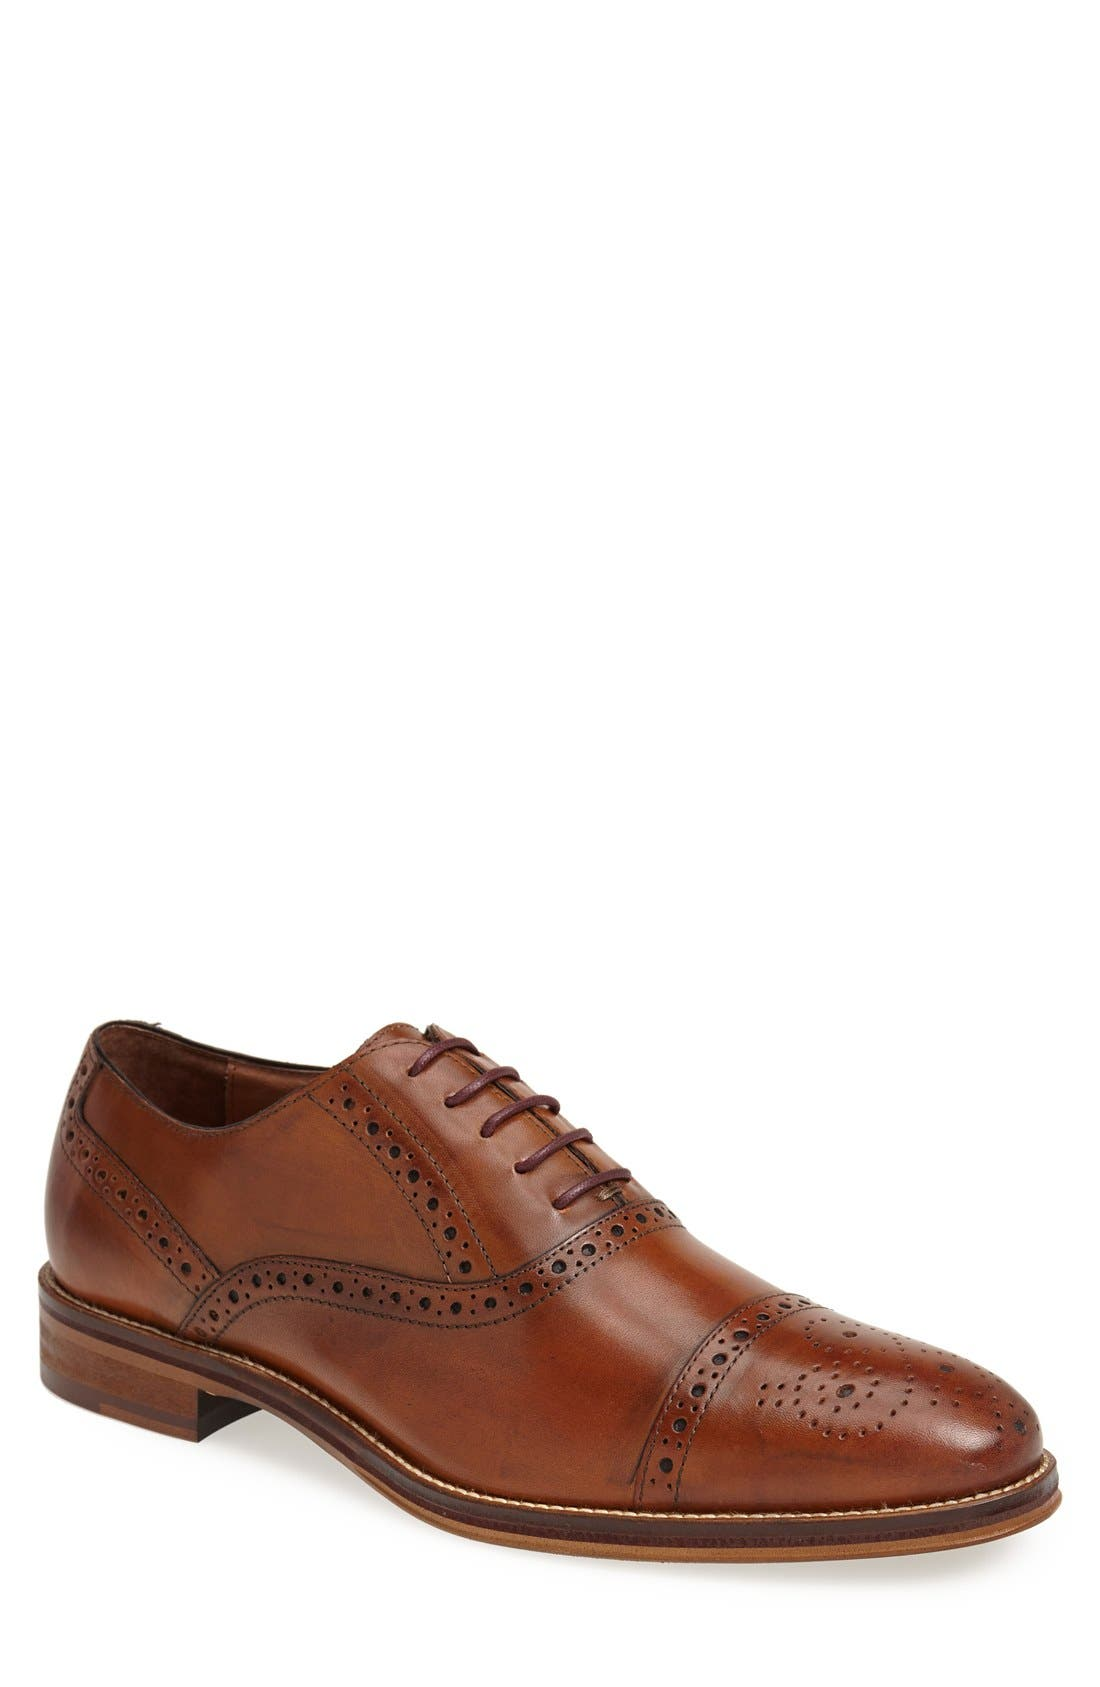 Johnston & Murphy 10 Brown Leather Vibram Soles Trampoline Wing Tips Shoes